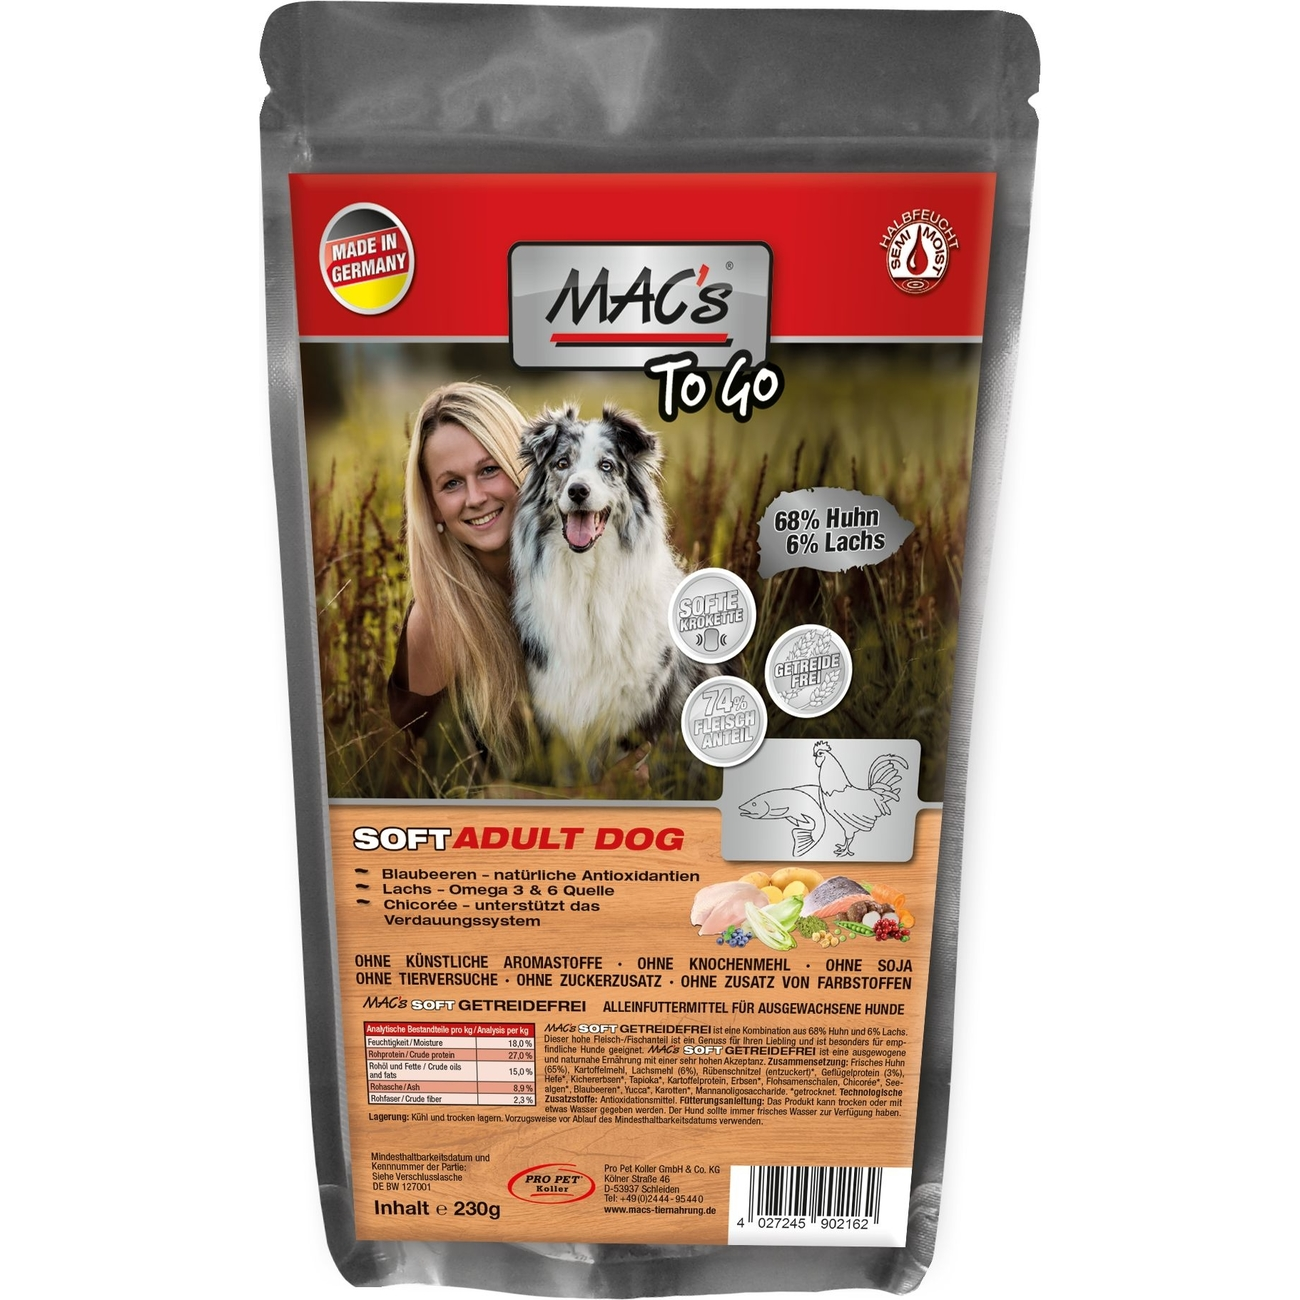 MACs Soft Grain Free Halbfeuchtfutter, 230g (to go)